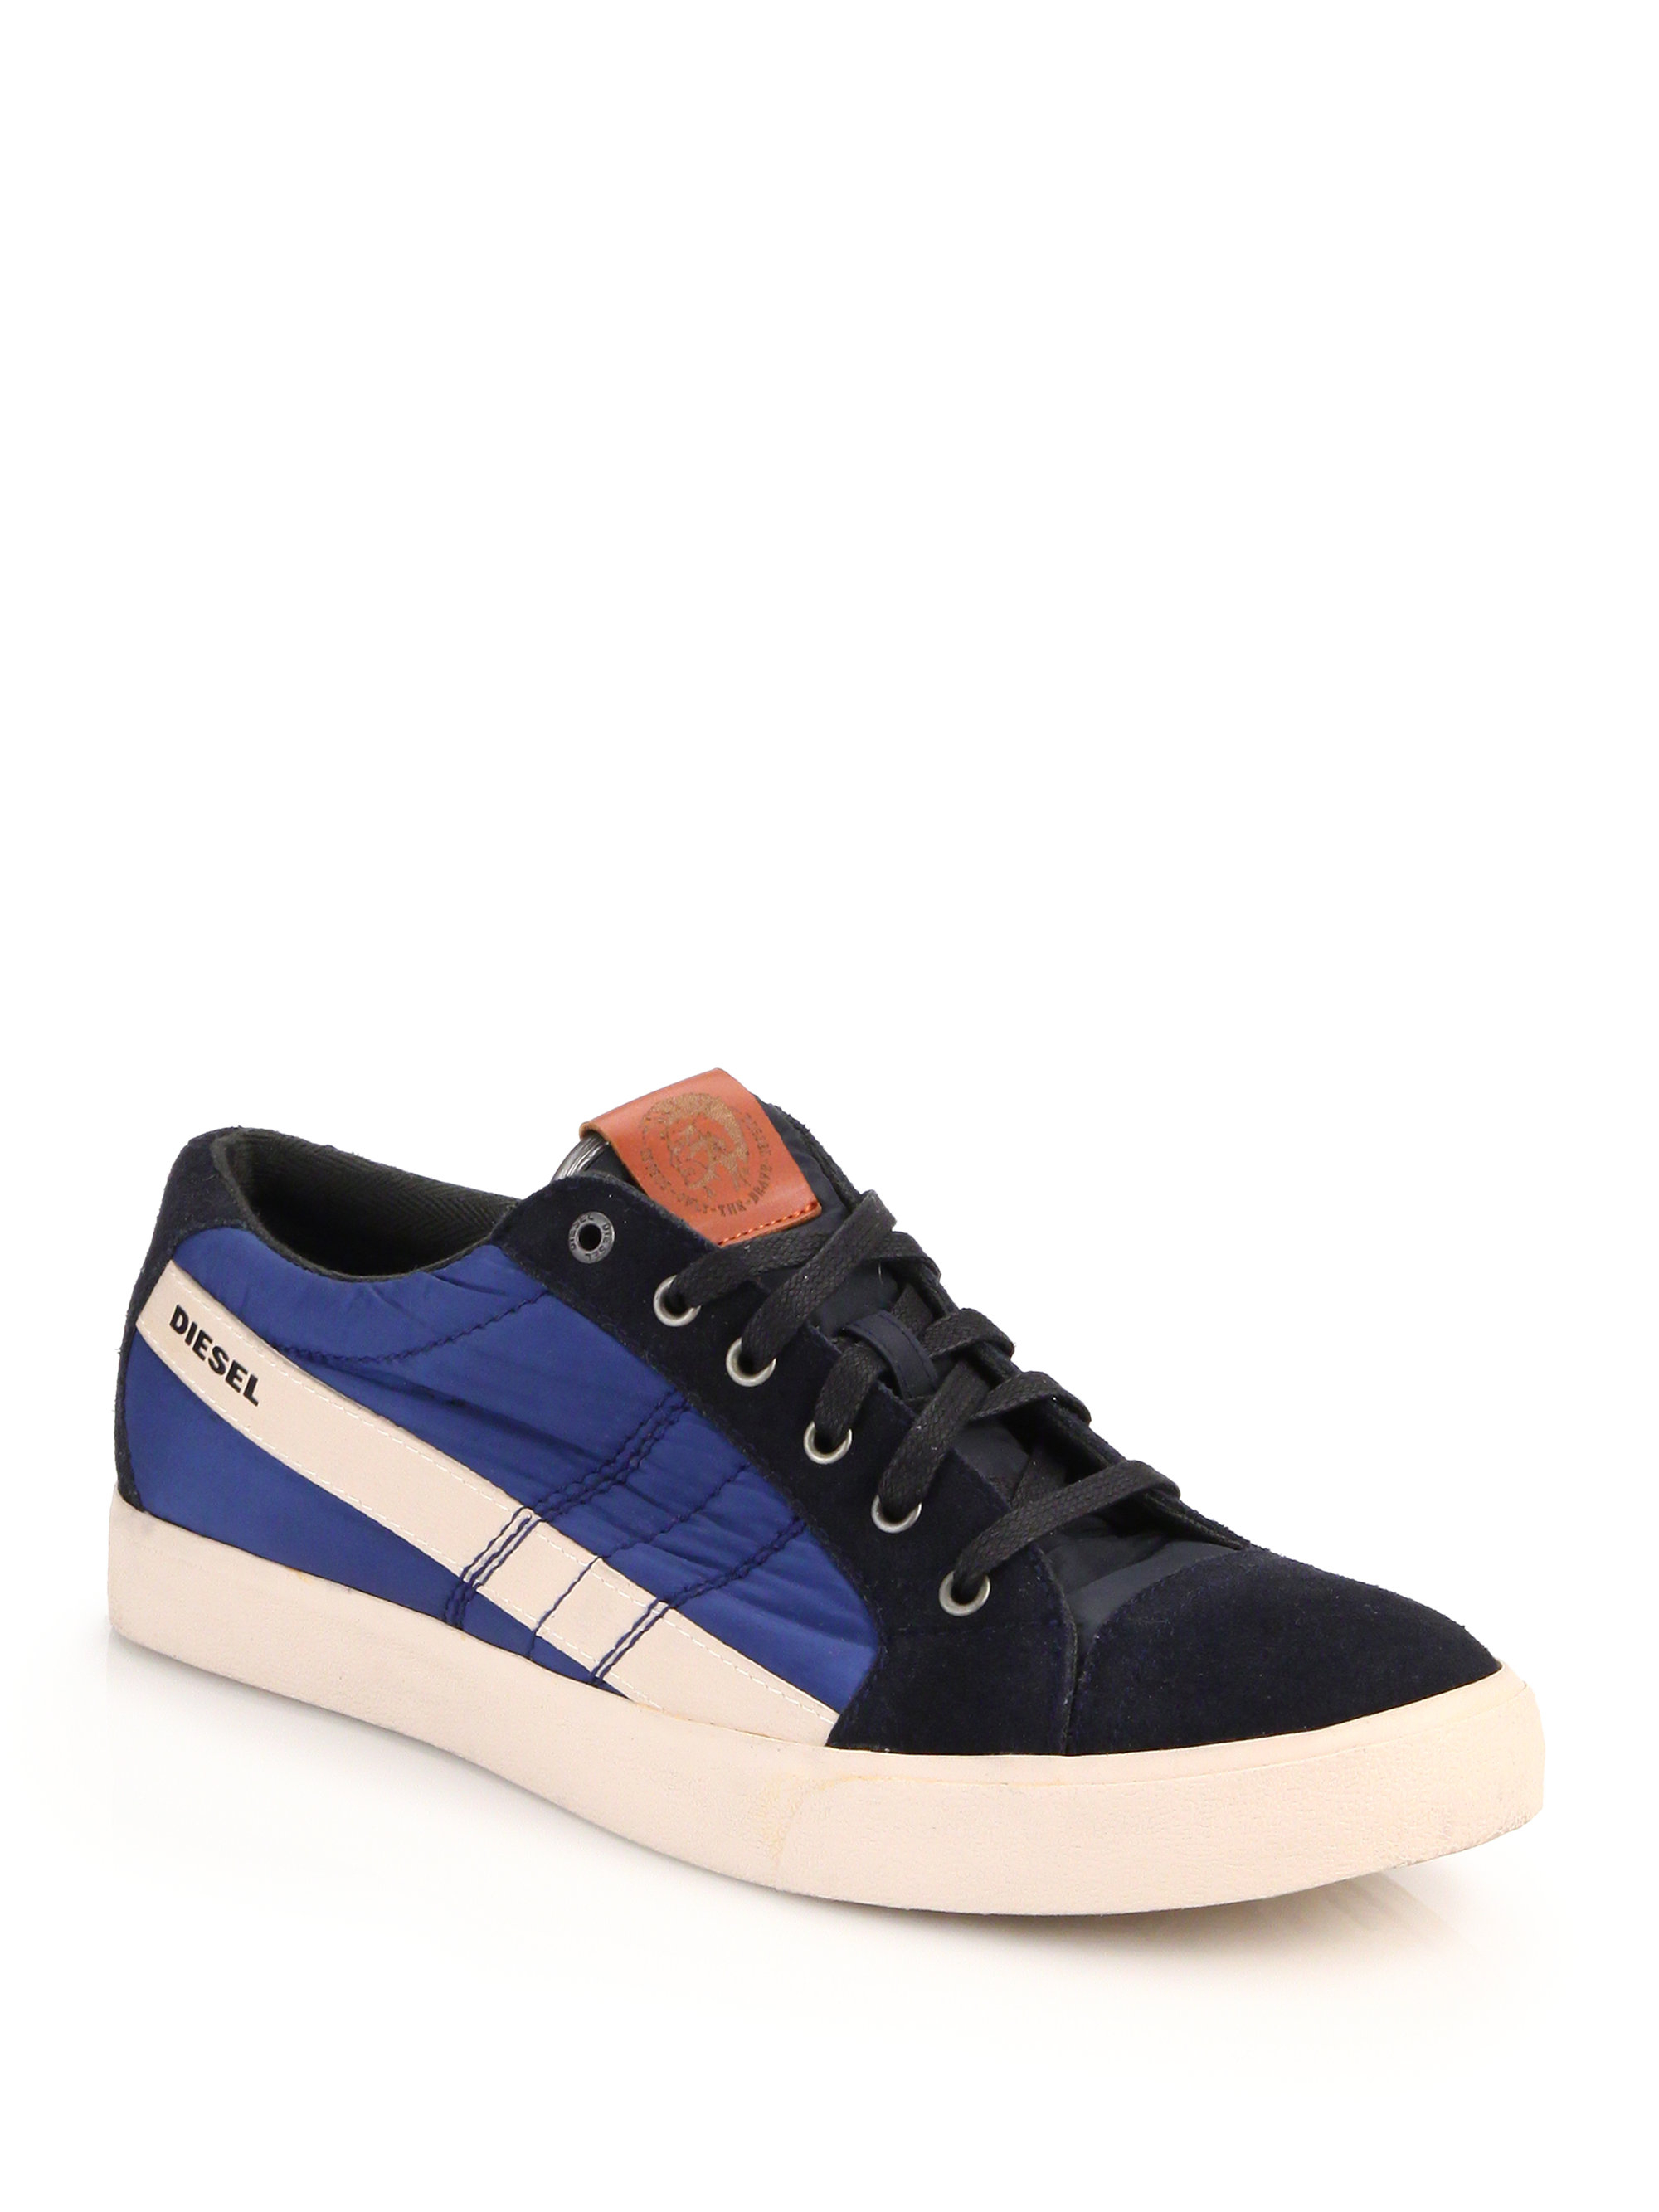 Lyst - Diesel D-string Nylon, Suede & Leather Sneakers for Men